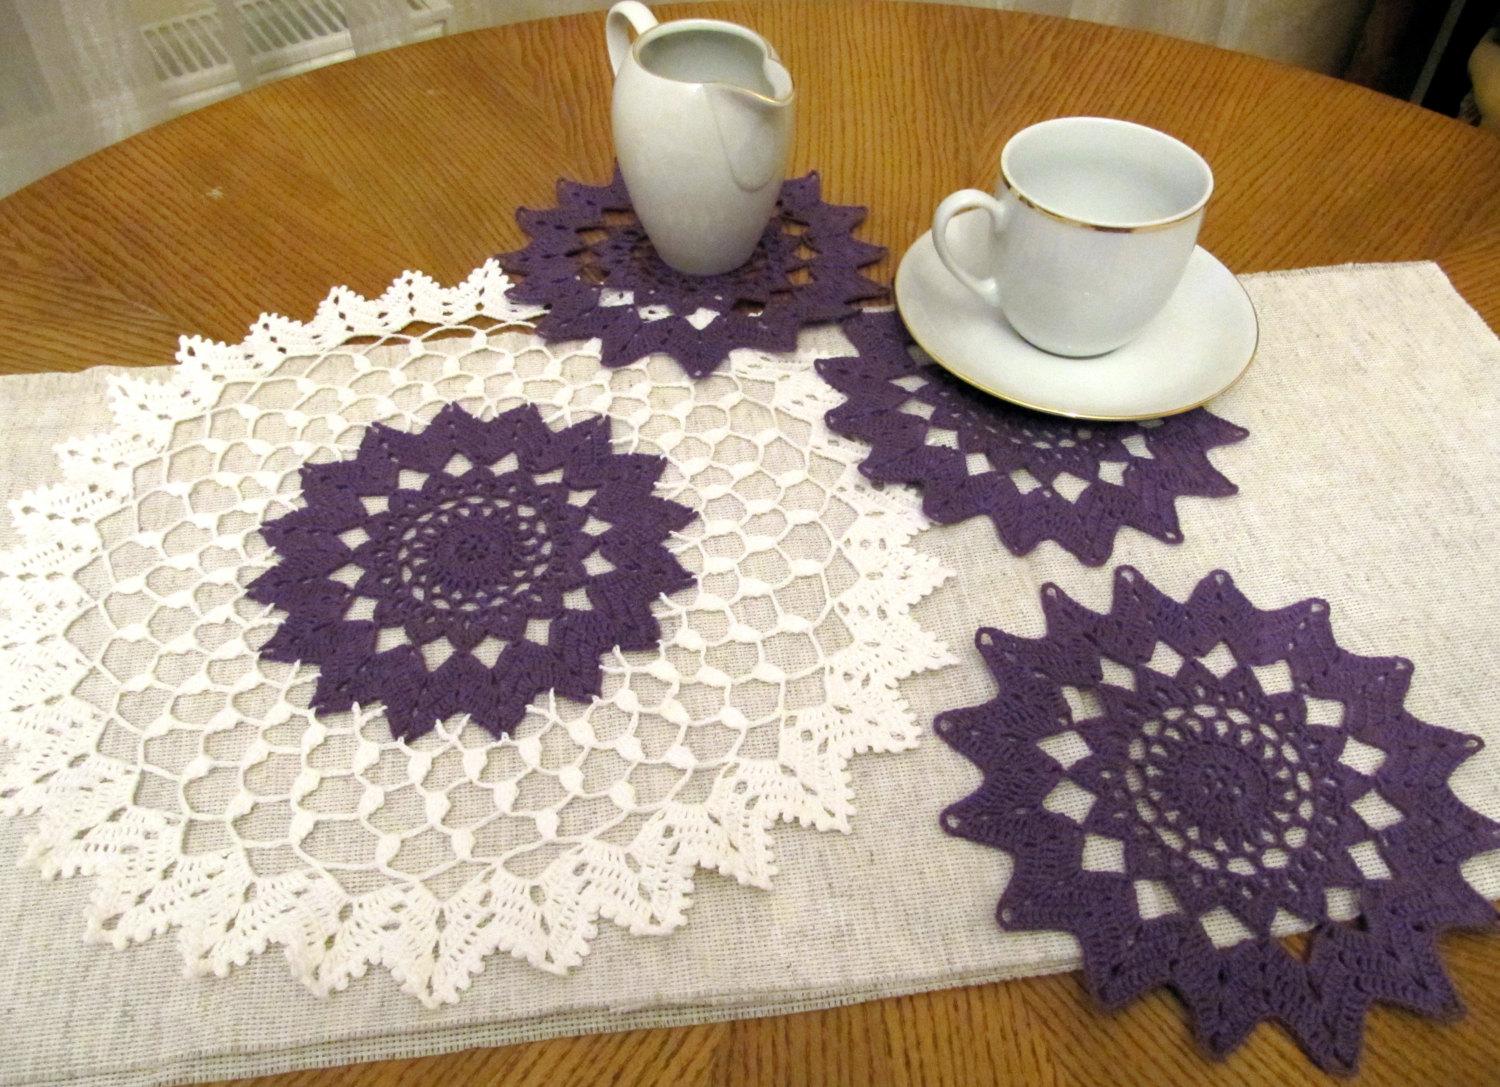 coffee table crochet purple doily set pcs small round mats full floor themed placemats matson and end doilies accent chairs for living room clearance white corner nightstand